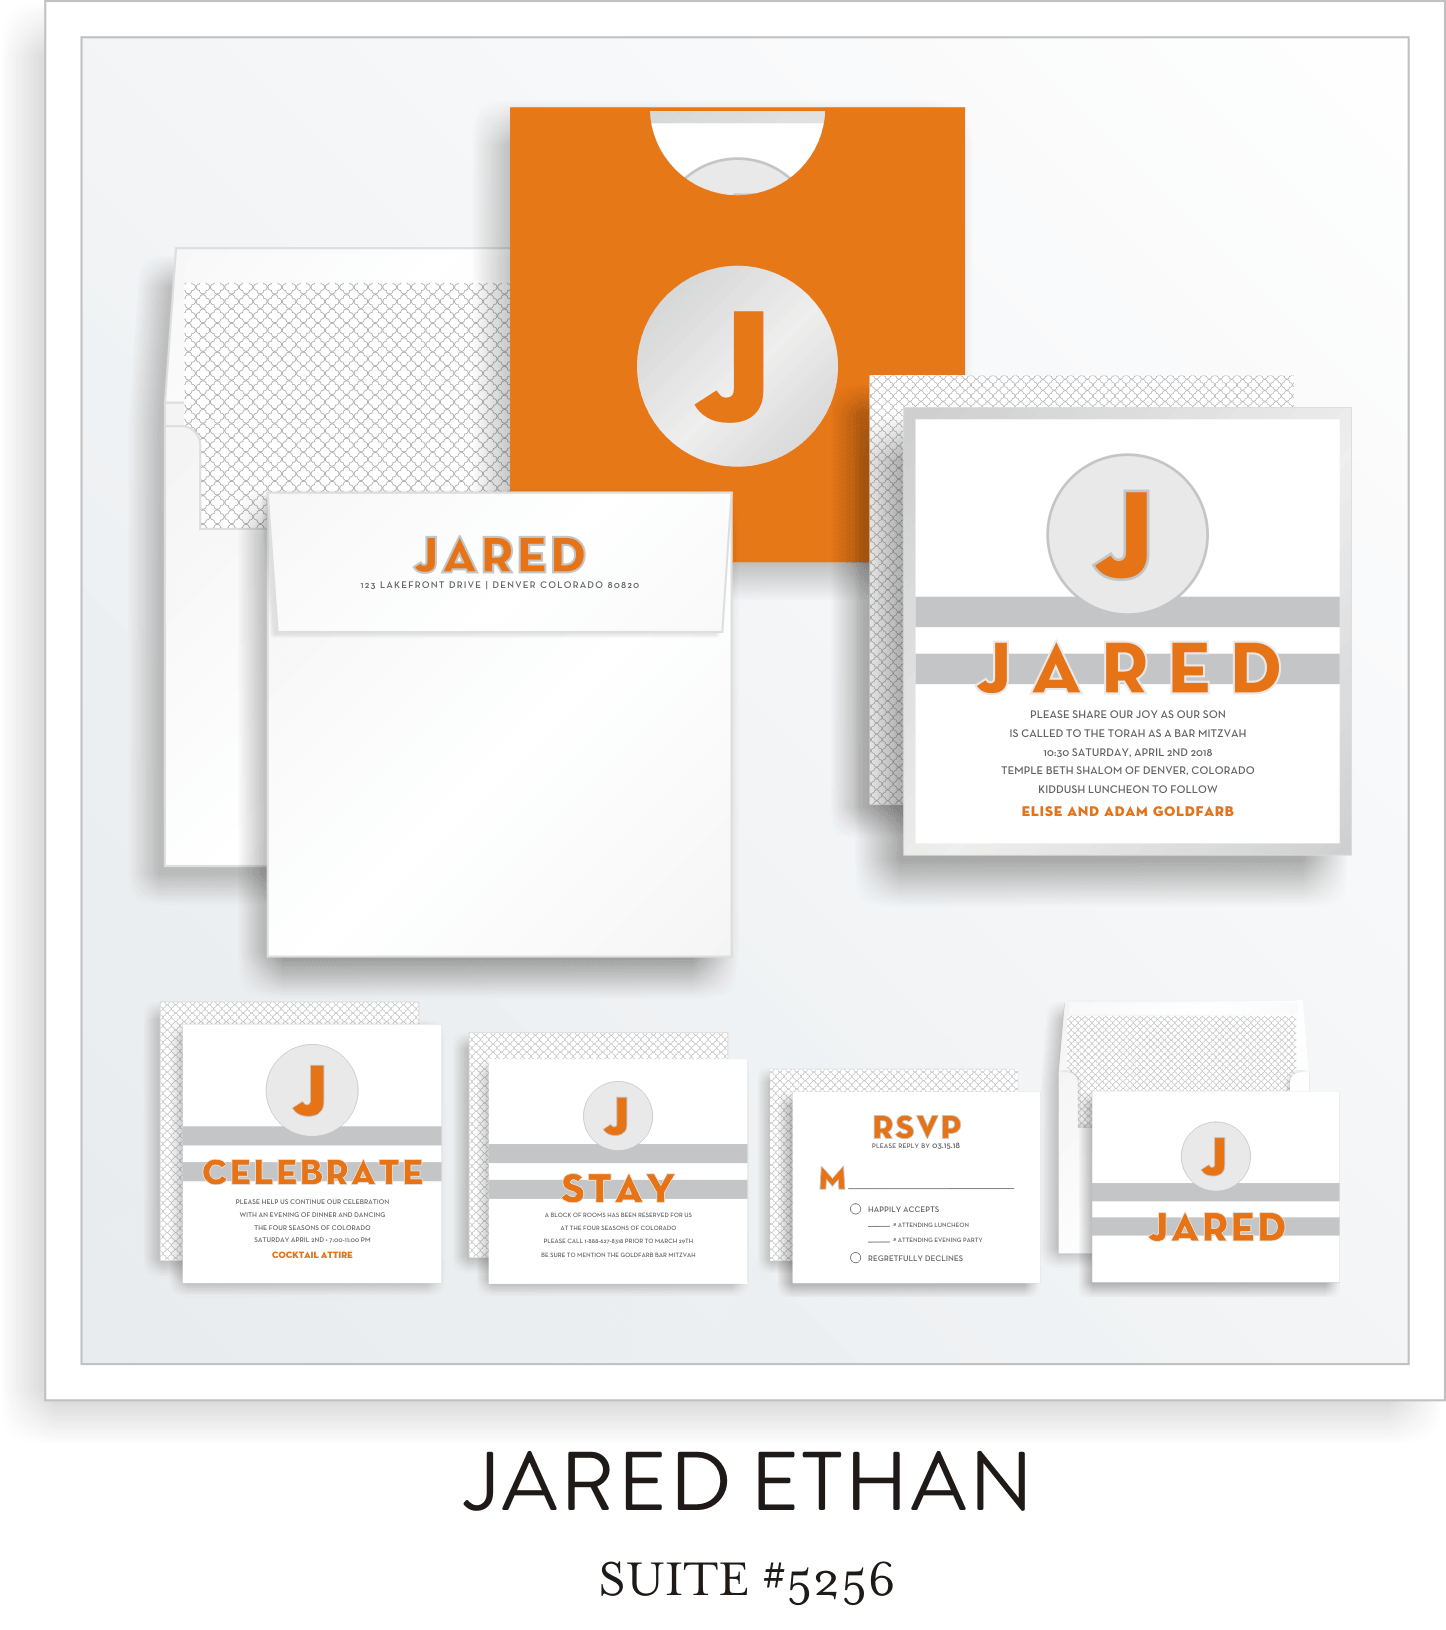 Copy of Bar Mitzvah Invitation Suite 5256 - Jared Ethan